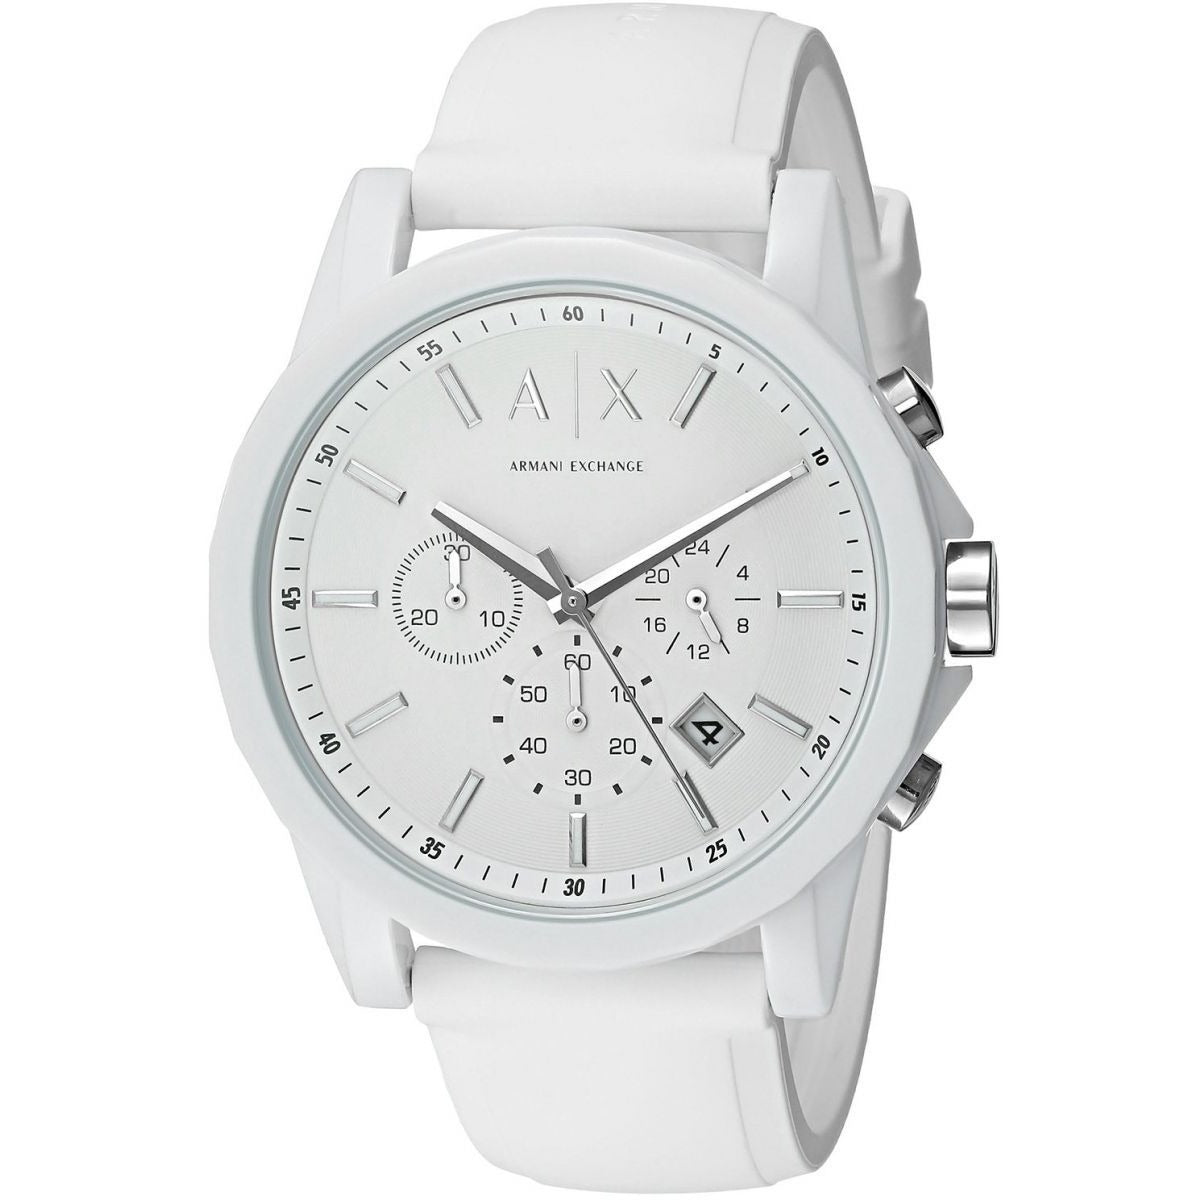 Armani Exchange Unisex AX1325 Analog Quartz White Watch